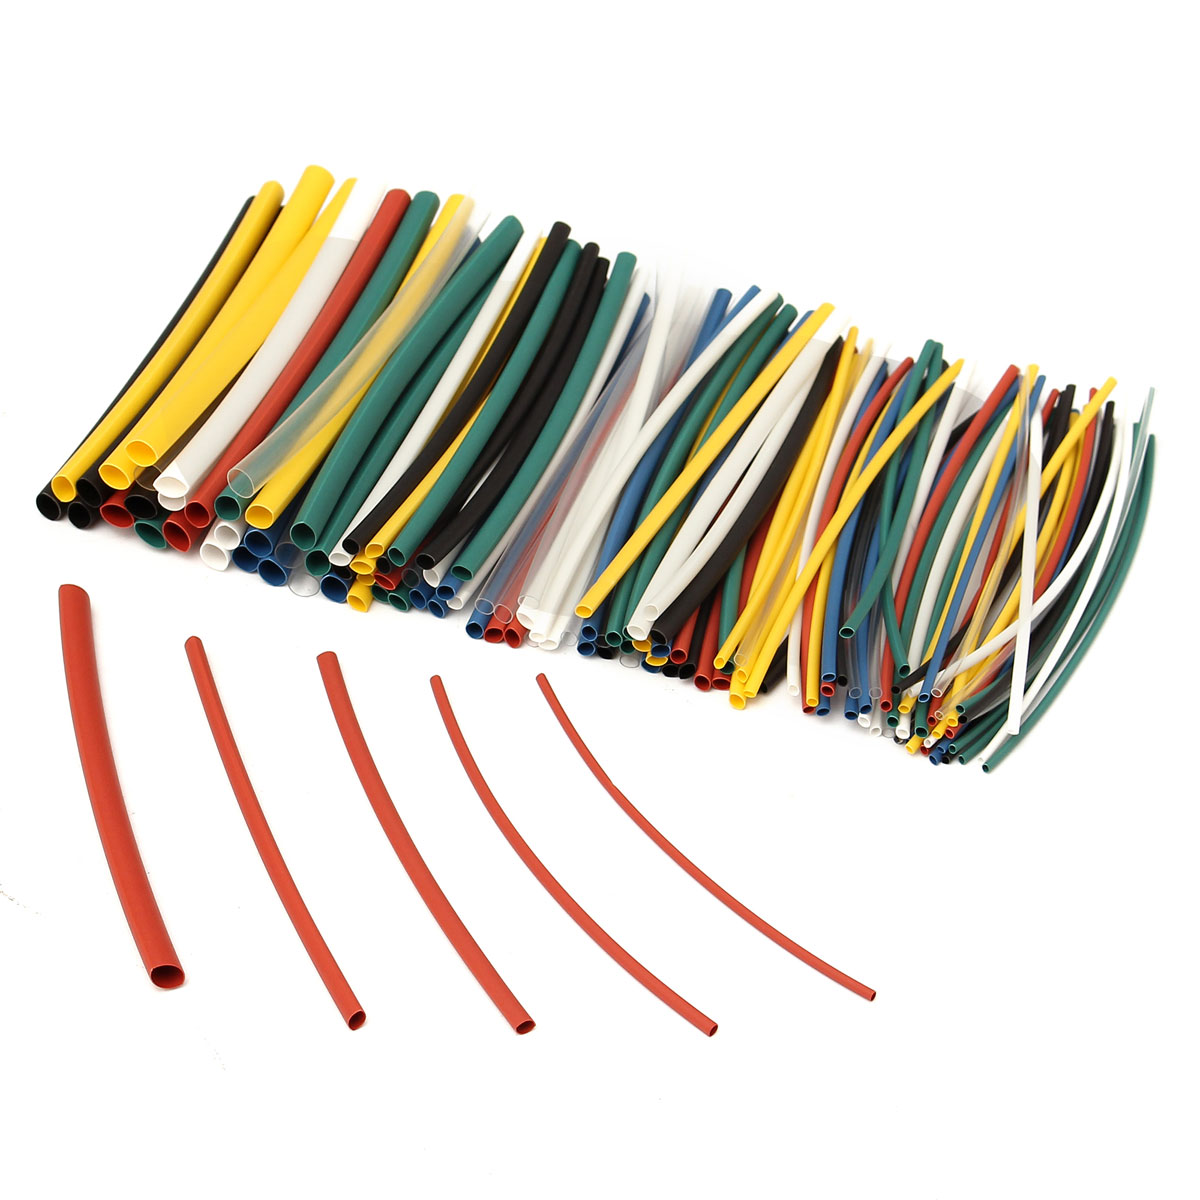 Best Promotion 140pcs/lot 7colors Assortment 2:1 Heat Shrink Tube Tubing Sleeving Wire Cable Kit High Quality недорого